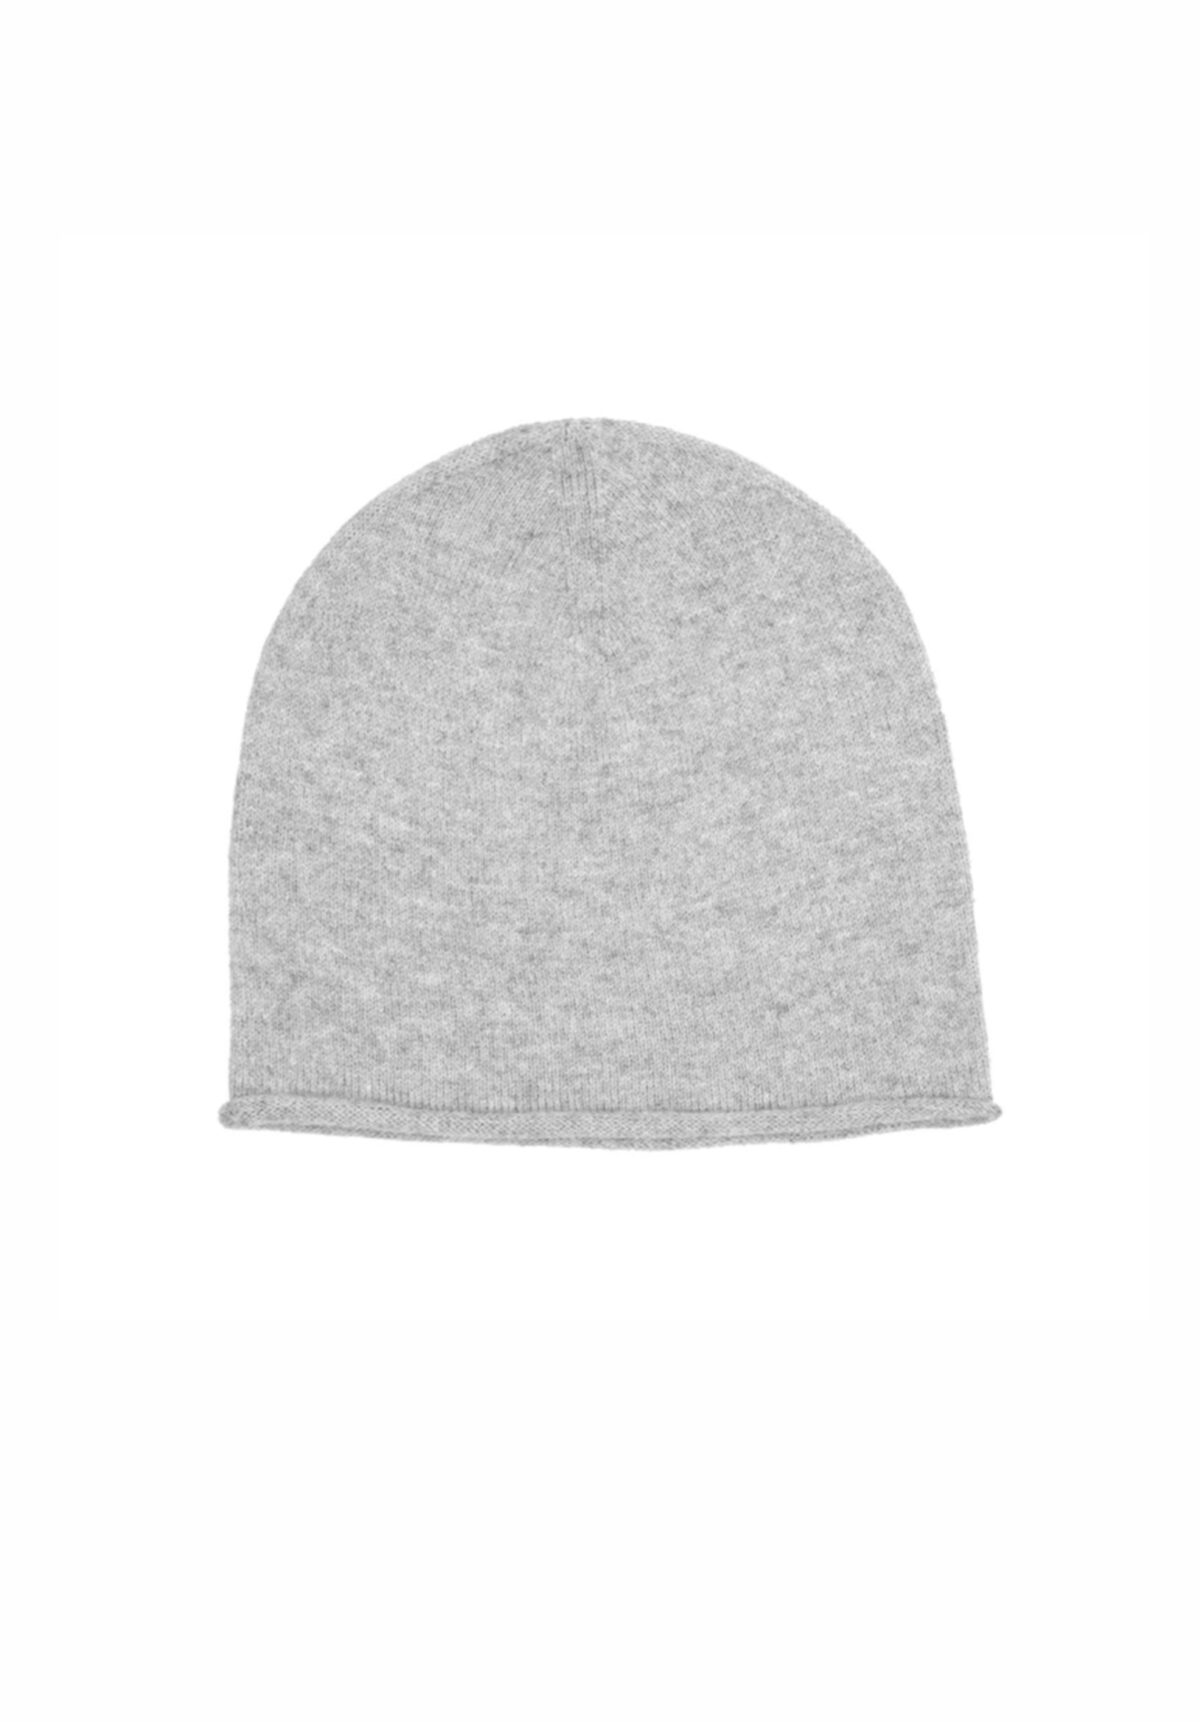 MSTRDS Cashmere Slouch Beanie light grey